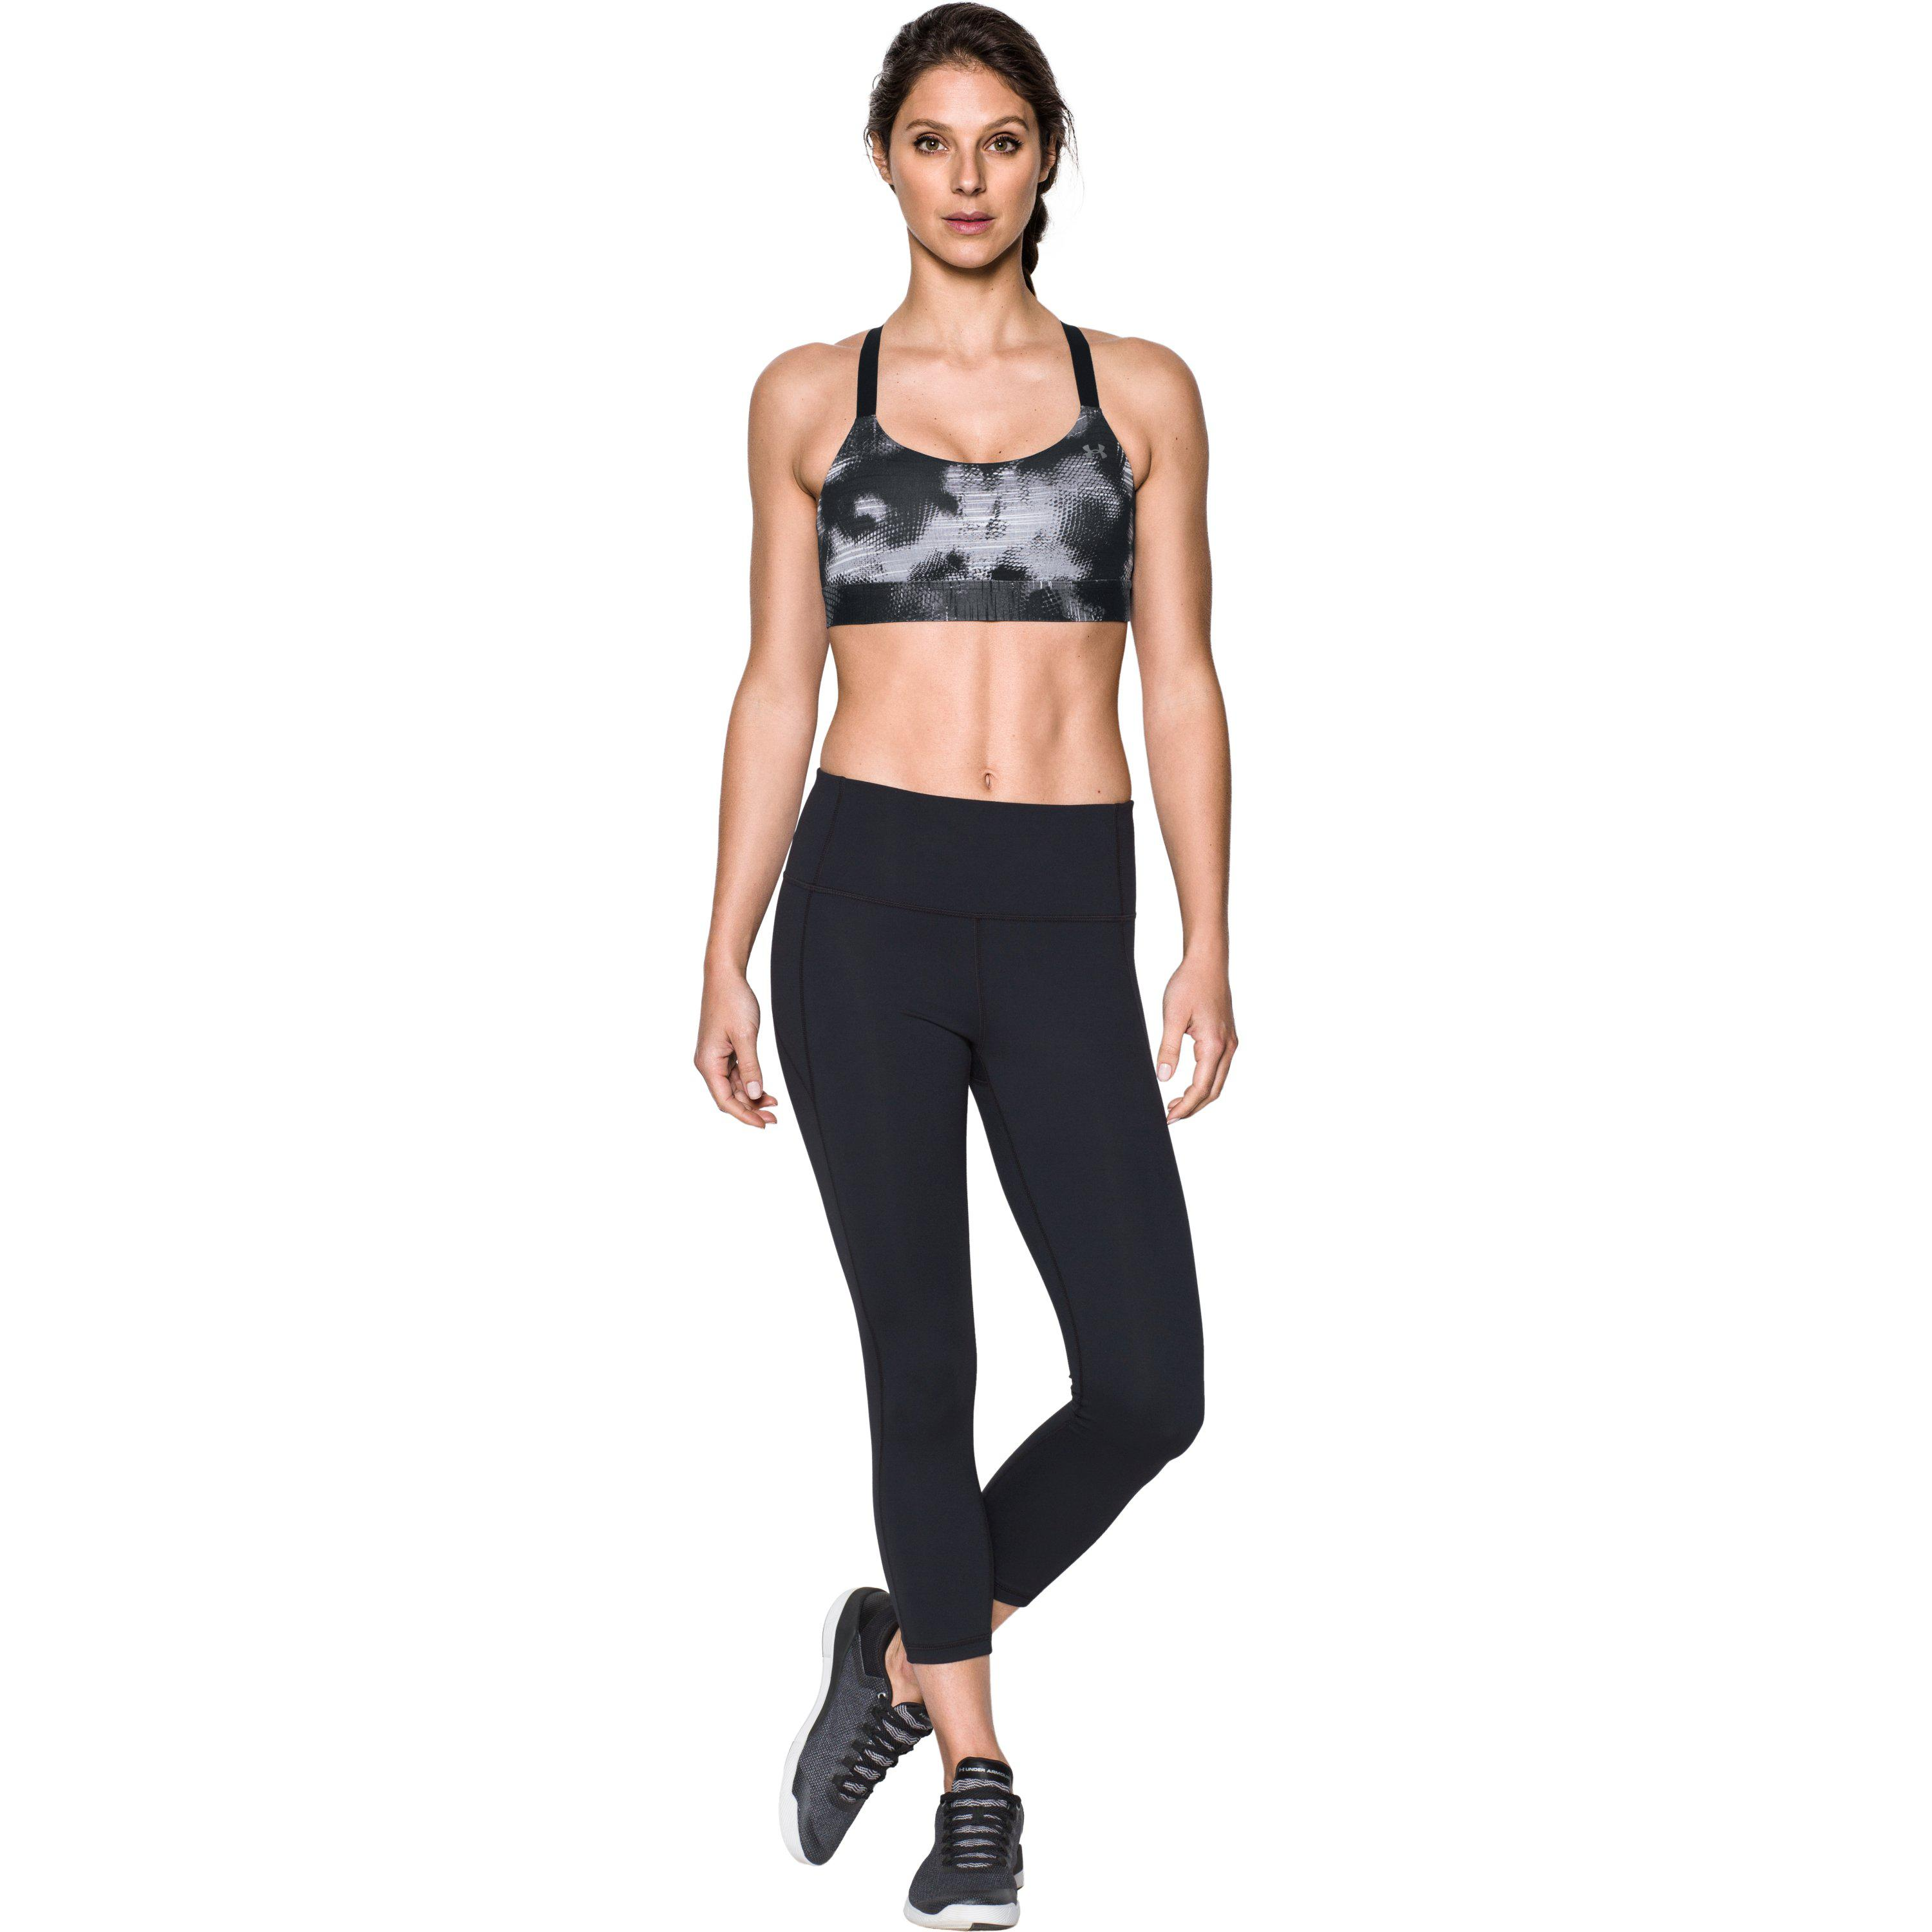 b5f6f27927 Lyst - Under Armour Women s Armour® Eclipse Mid — Printed Sports Bra ...